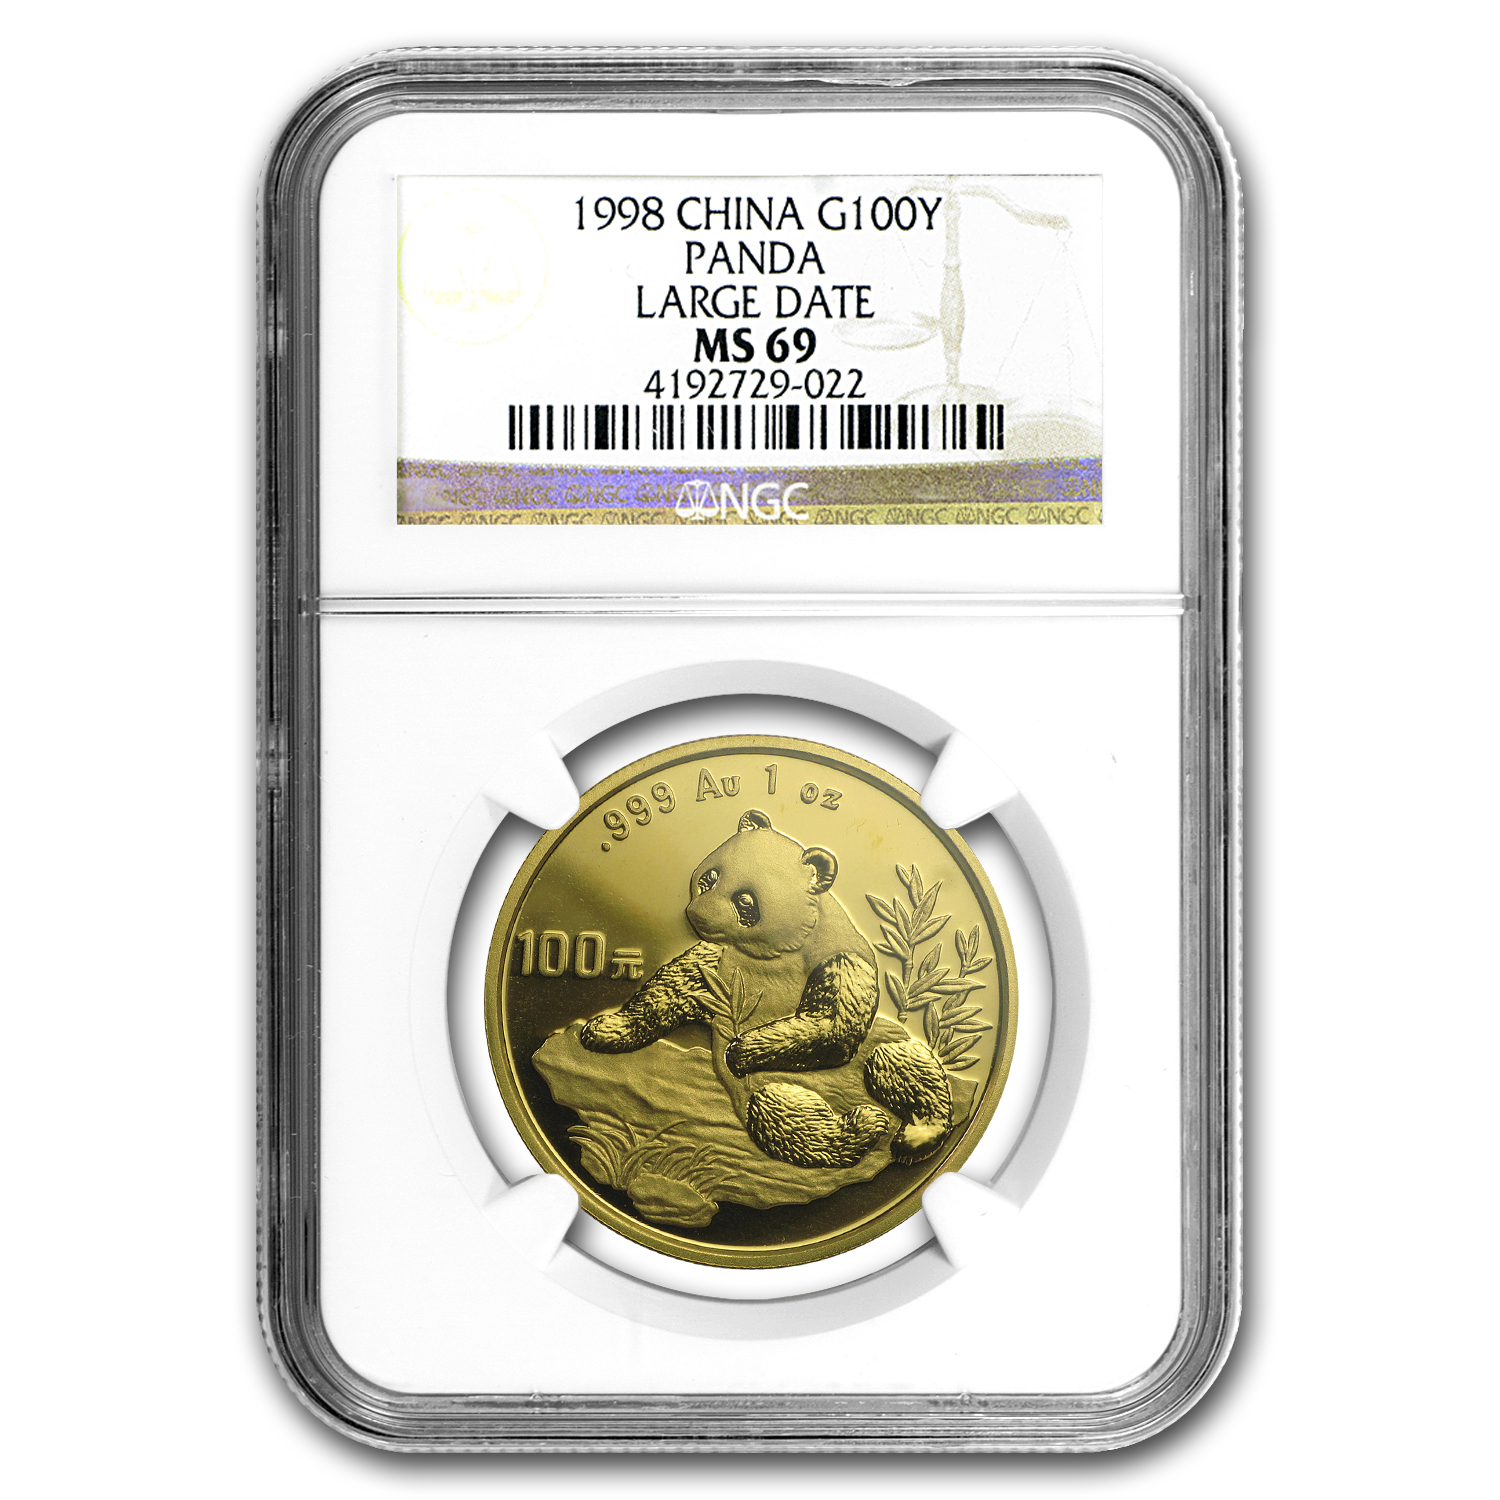 1998 China 1 oz Gold Panda Large Date MS-69 NGC